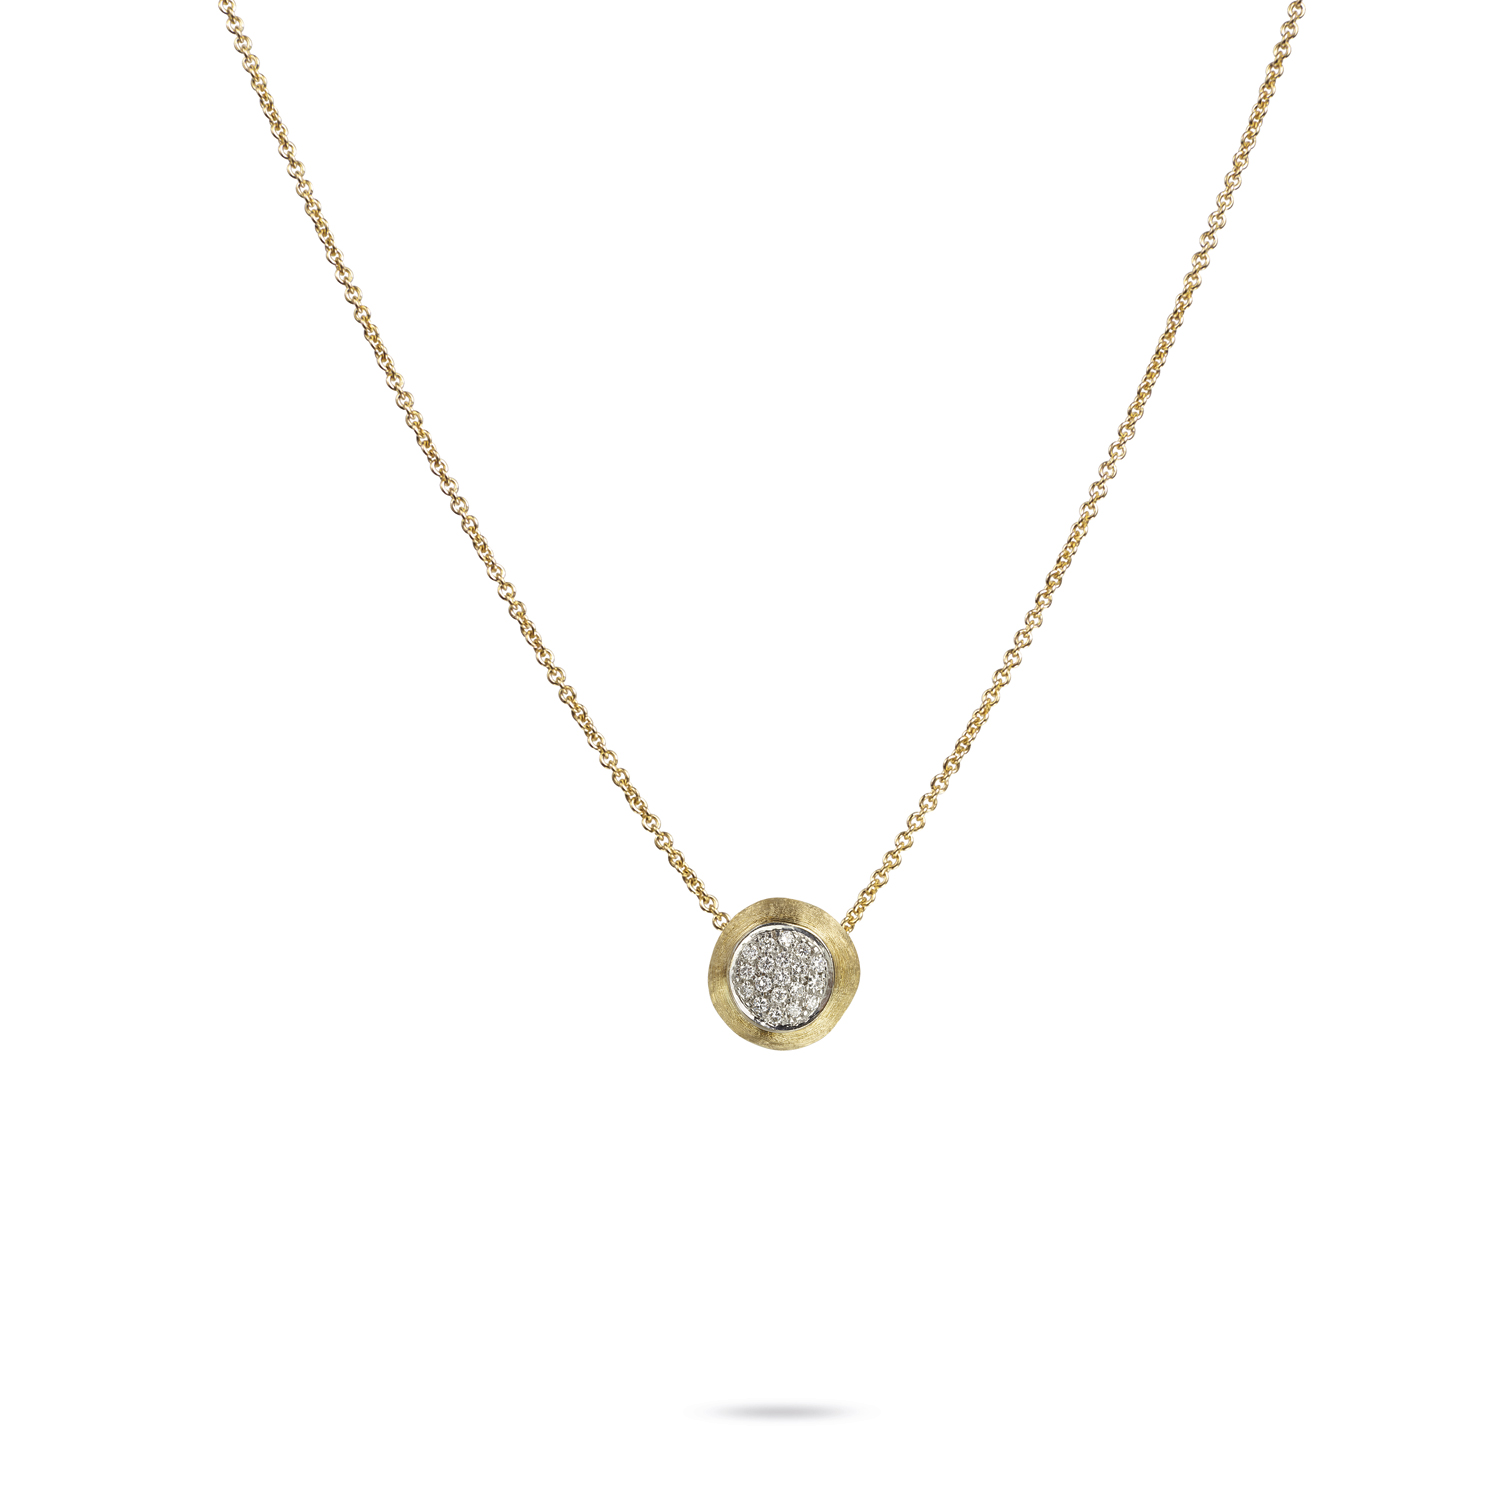 Marco Bicego Delicati Gold & Diamond Necklace